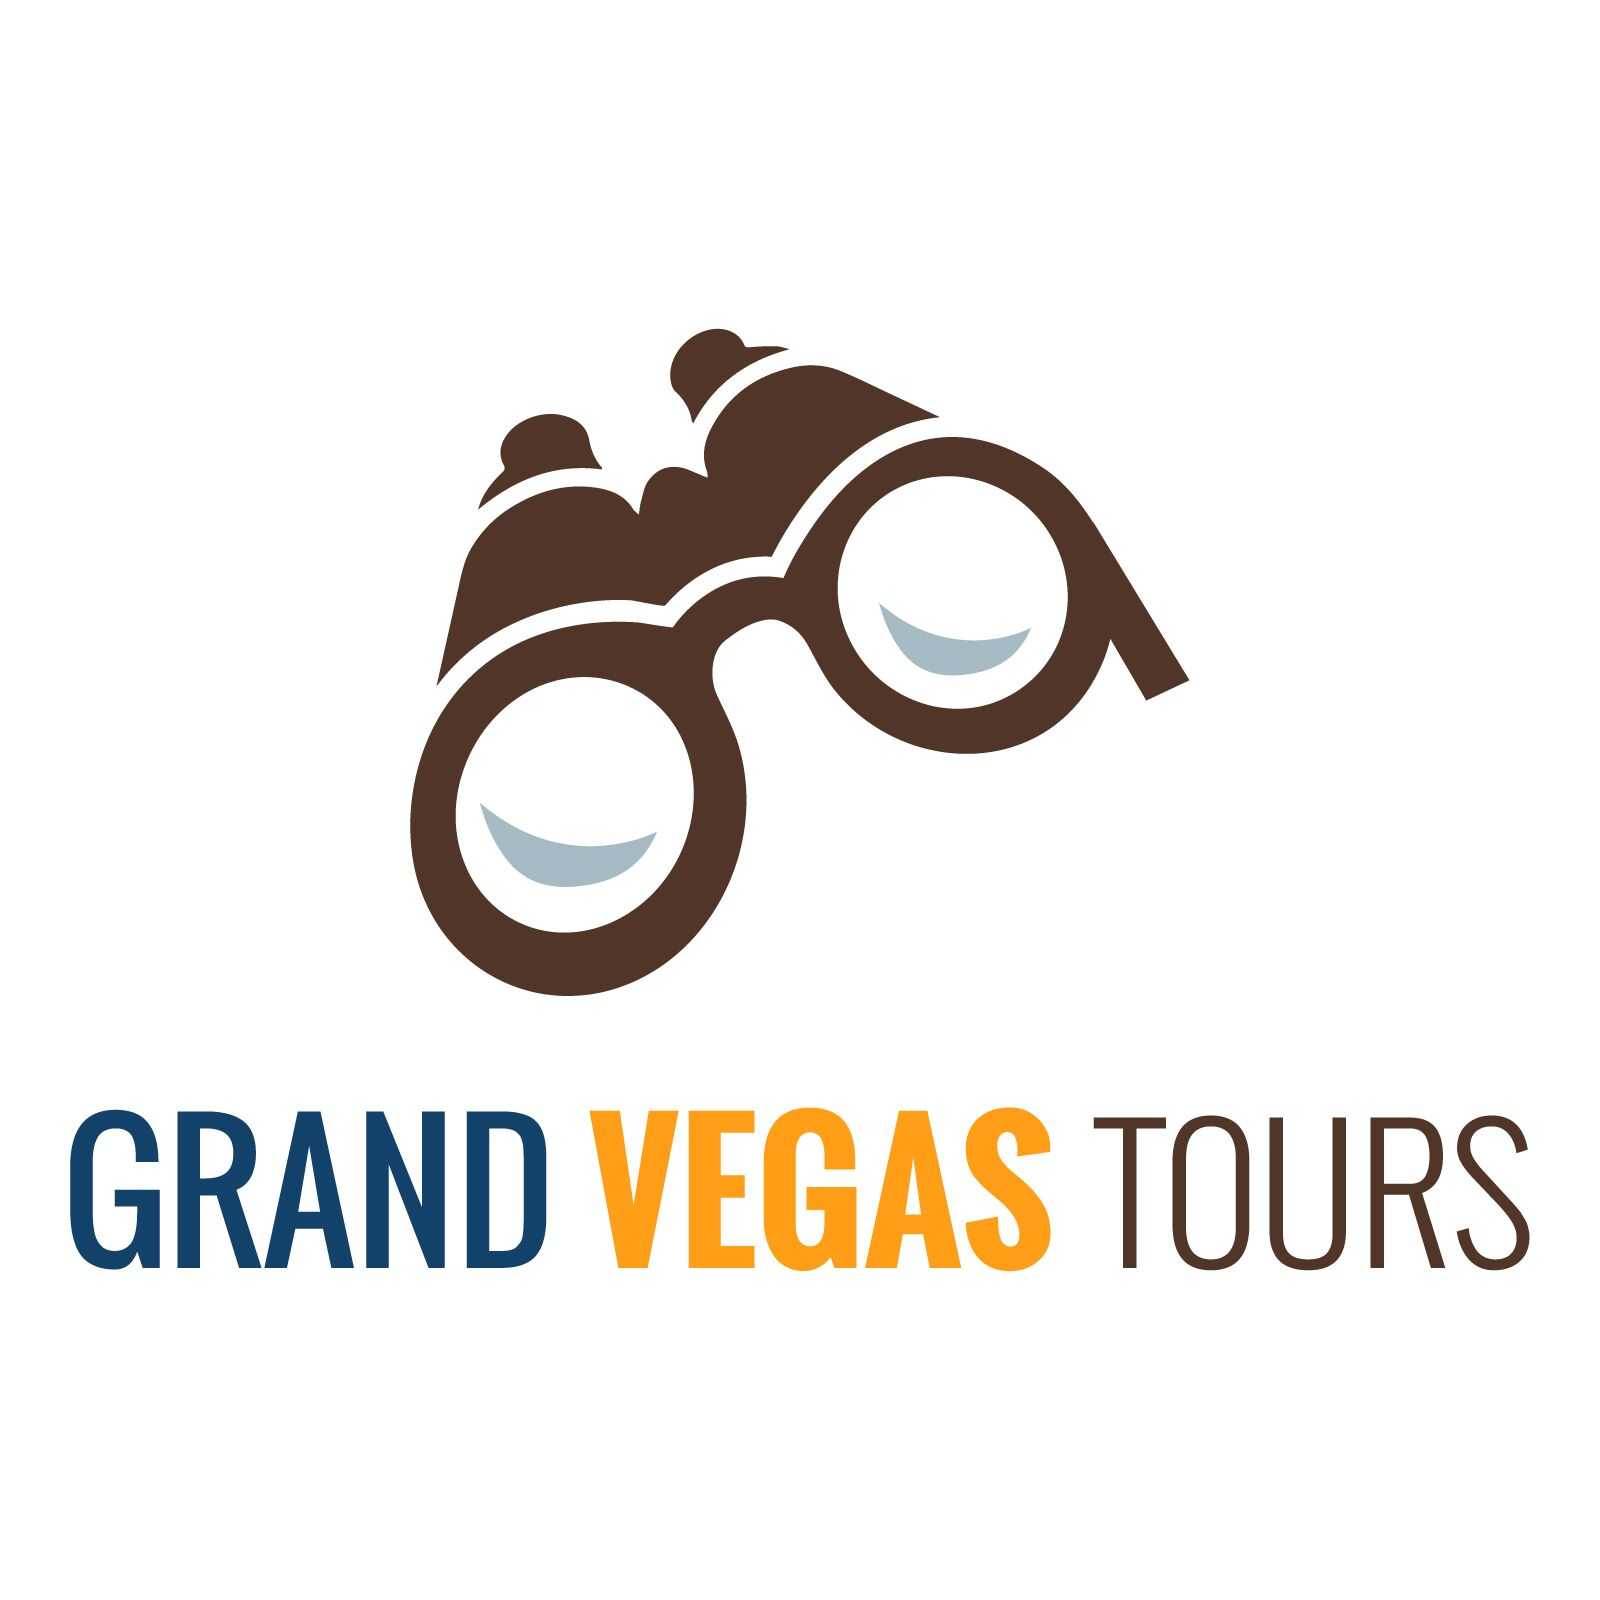 Grand Vegas Tours